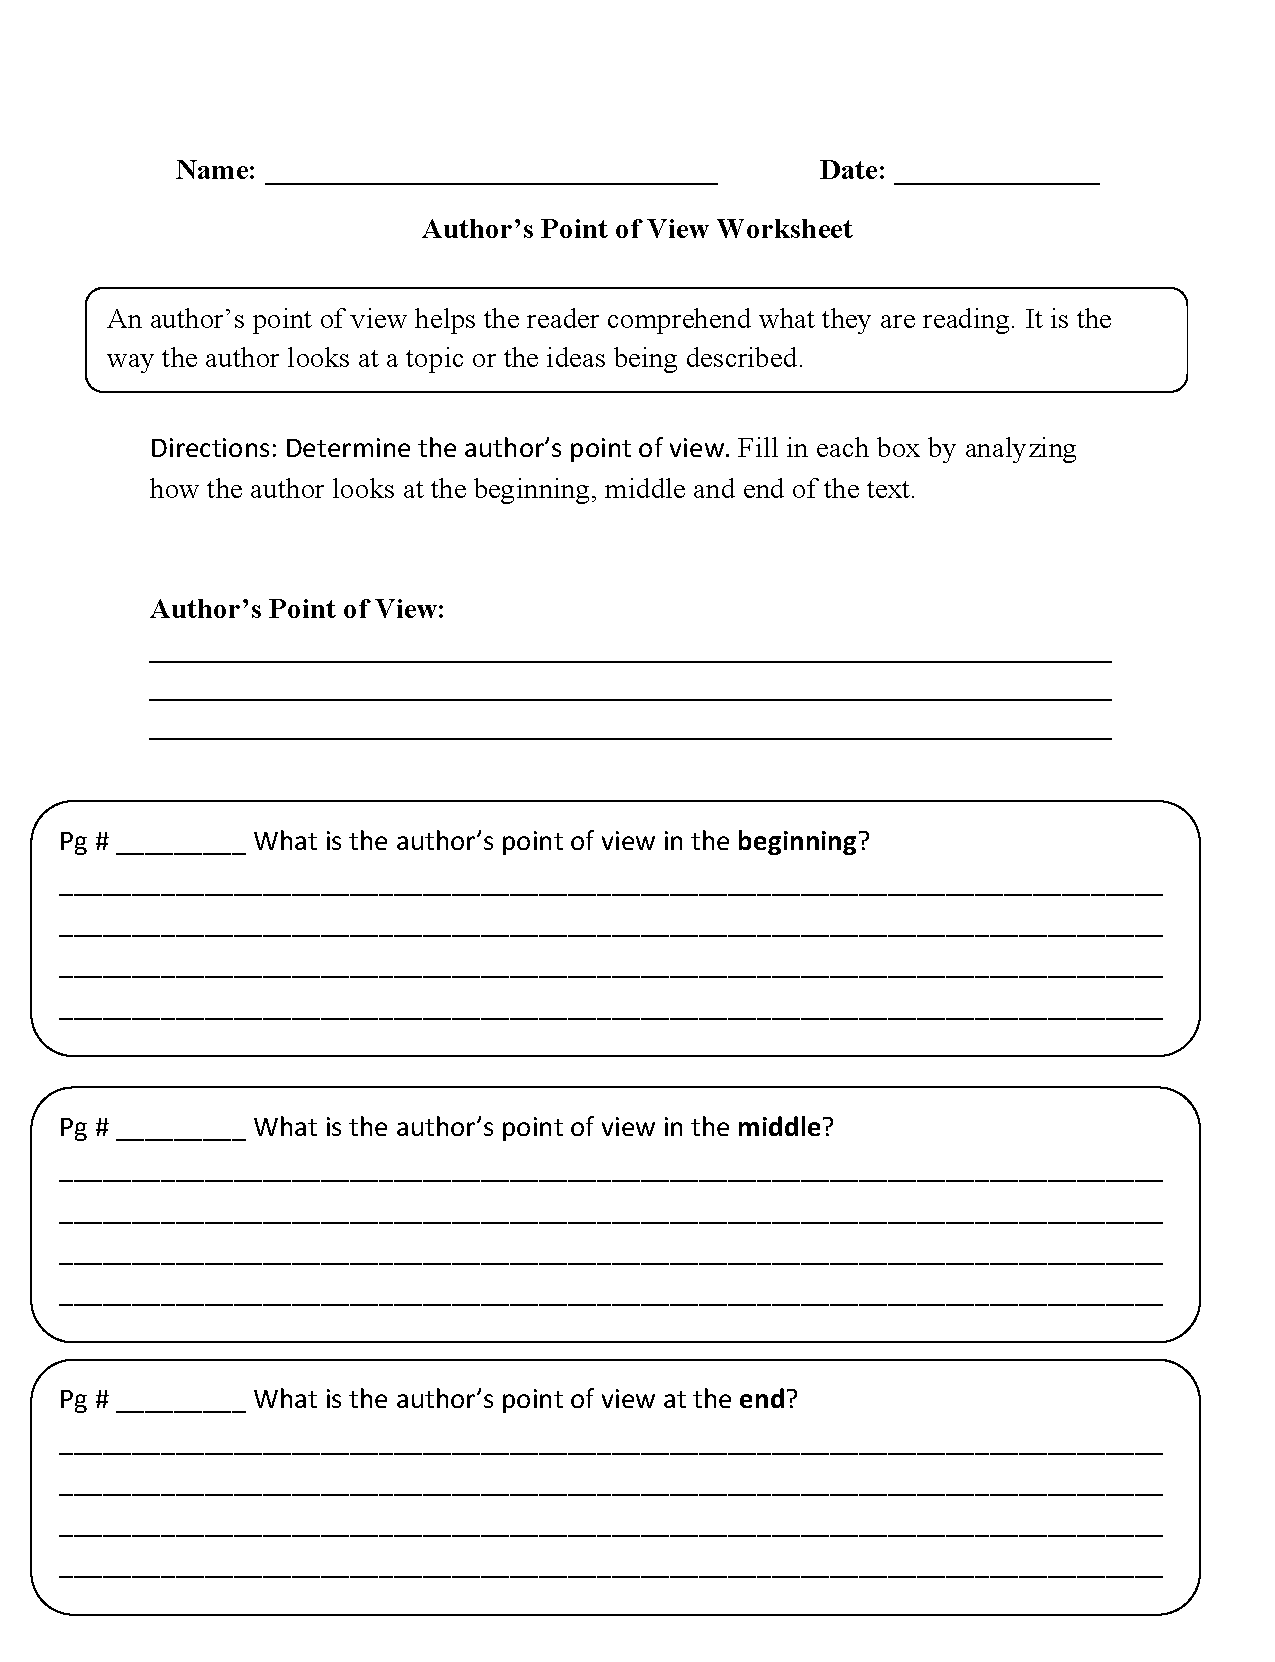 Weirdmailus  Unusual Englishlinxcom  Point Of View Worksheets With Engaging Point Of View Worksheets With Beautiful Name Tracing Worksheet Also Adding And Subtracting Fractions Worksheet In Addition Spanish Worksheets For Kids And Th Grade Science Worksheets As Well As Trig Word Problems Worksheet Answers Additionally Boy Scout Merit Badge Worksheets From Englishlinxcom With Weirdmailus  Engaging Englishlinxcom  Point Of View Worksheets With Beautiful Point Of View Worksheets And Unusual Name Tracing Worksheet Also Adding And Subtracting Fractions Worksheet In Addition Spanish Worksheets For Kids From Englishlinxcom